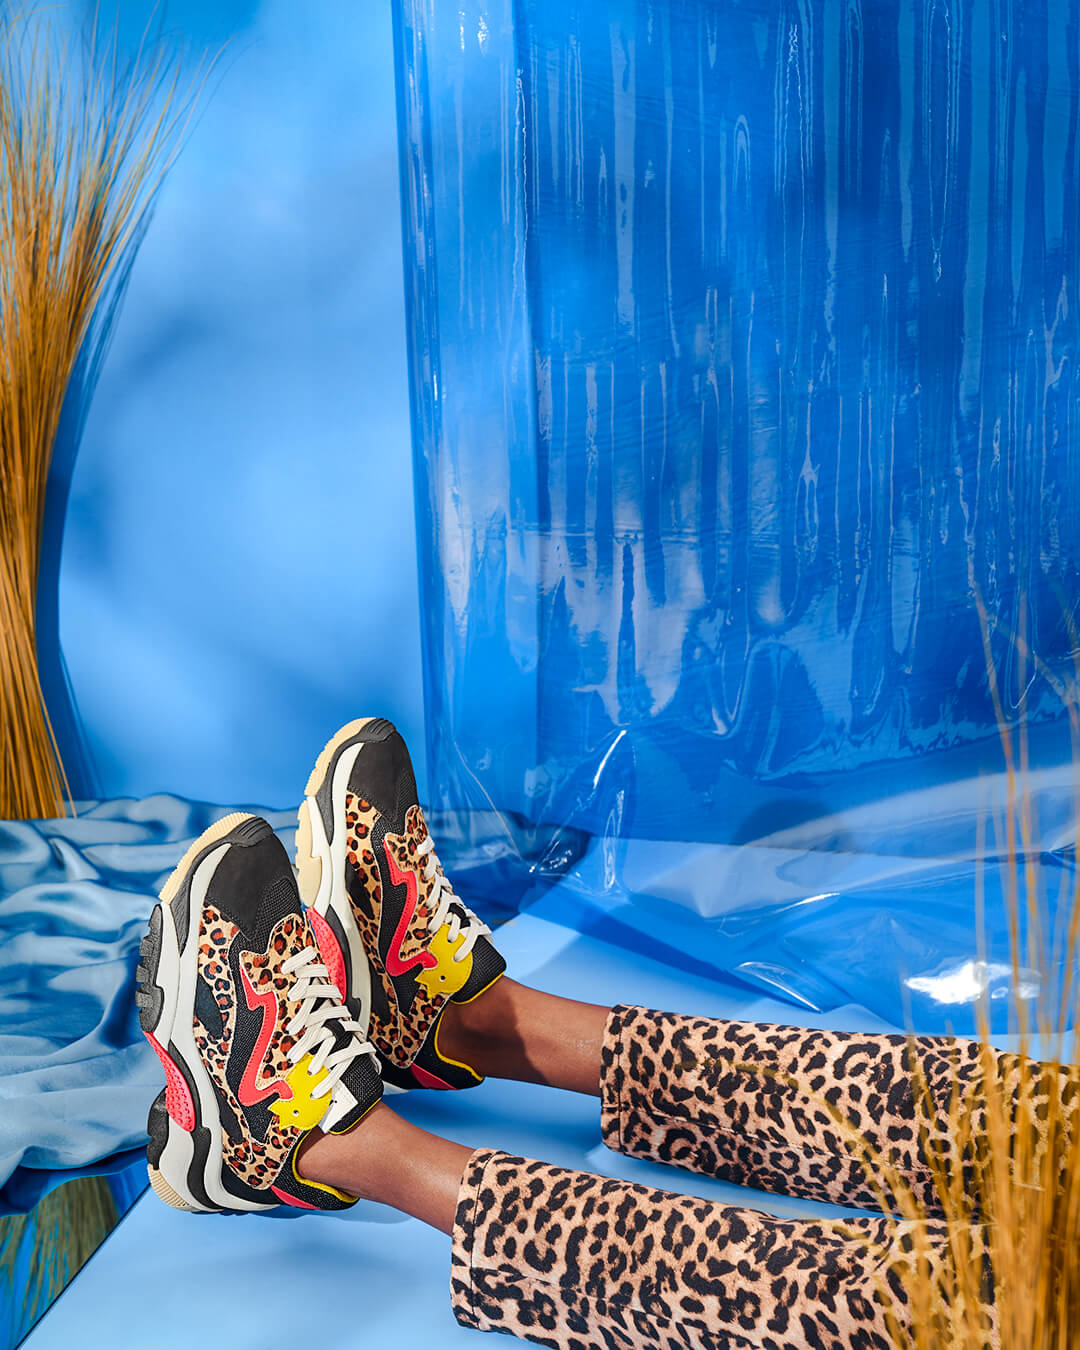 credits: photo - jenna gang, wardrobe - ross mccallum, sets - caylah laes  description: model wearing fake zebra shoes and pants on a blue background.